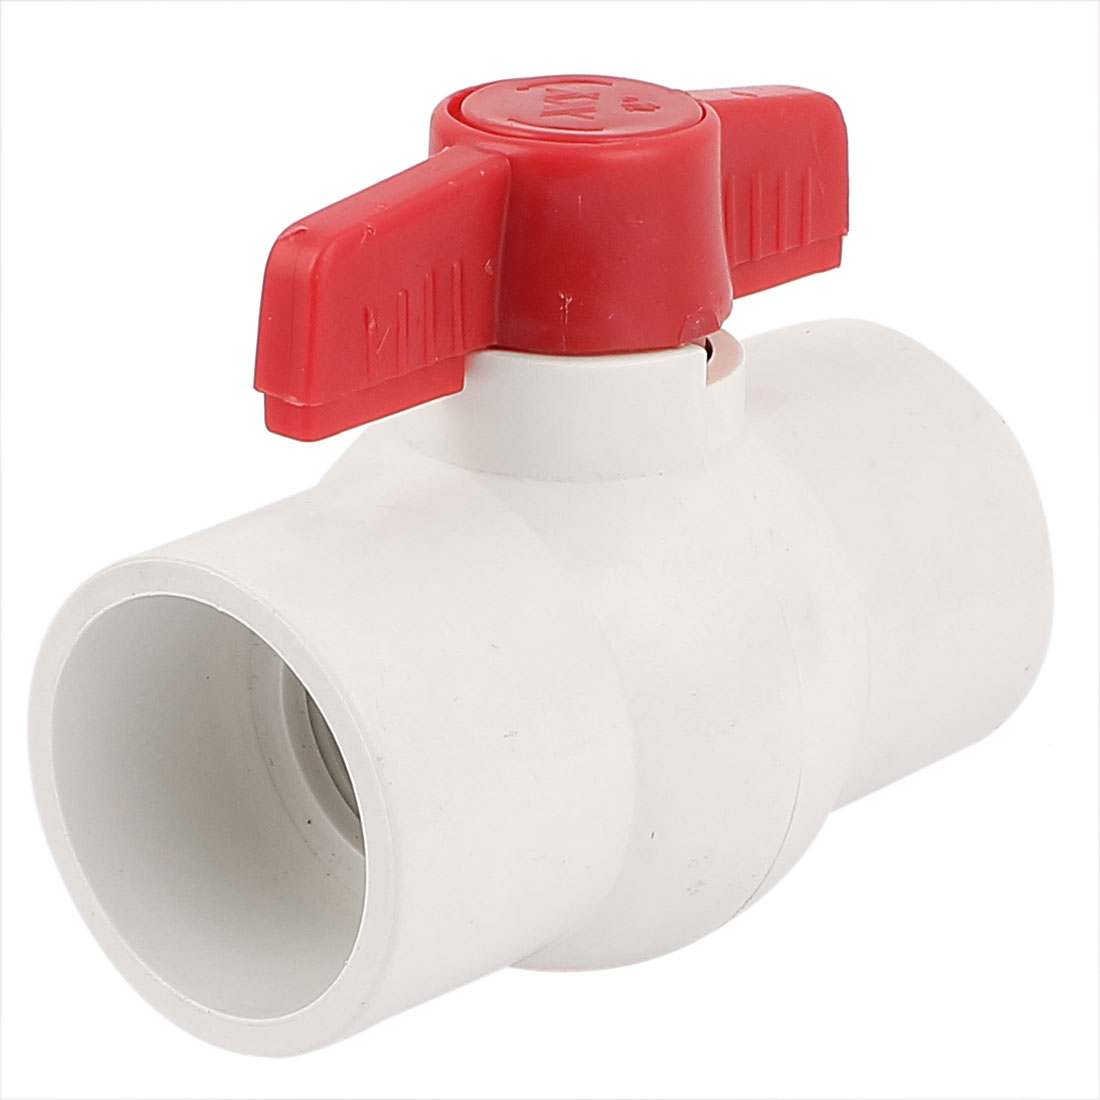 50MM Dia Slip Ends Water Control PVC Ball Valve White Red